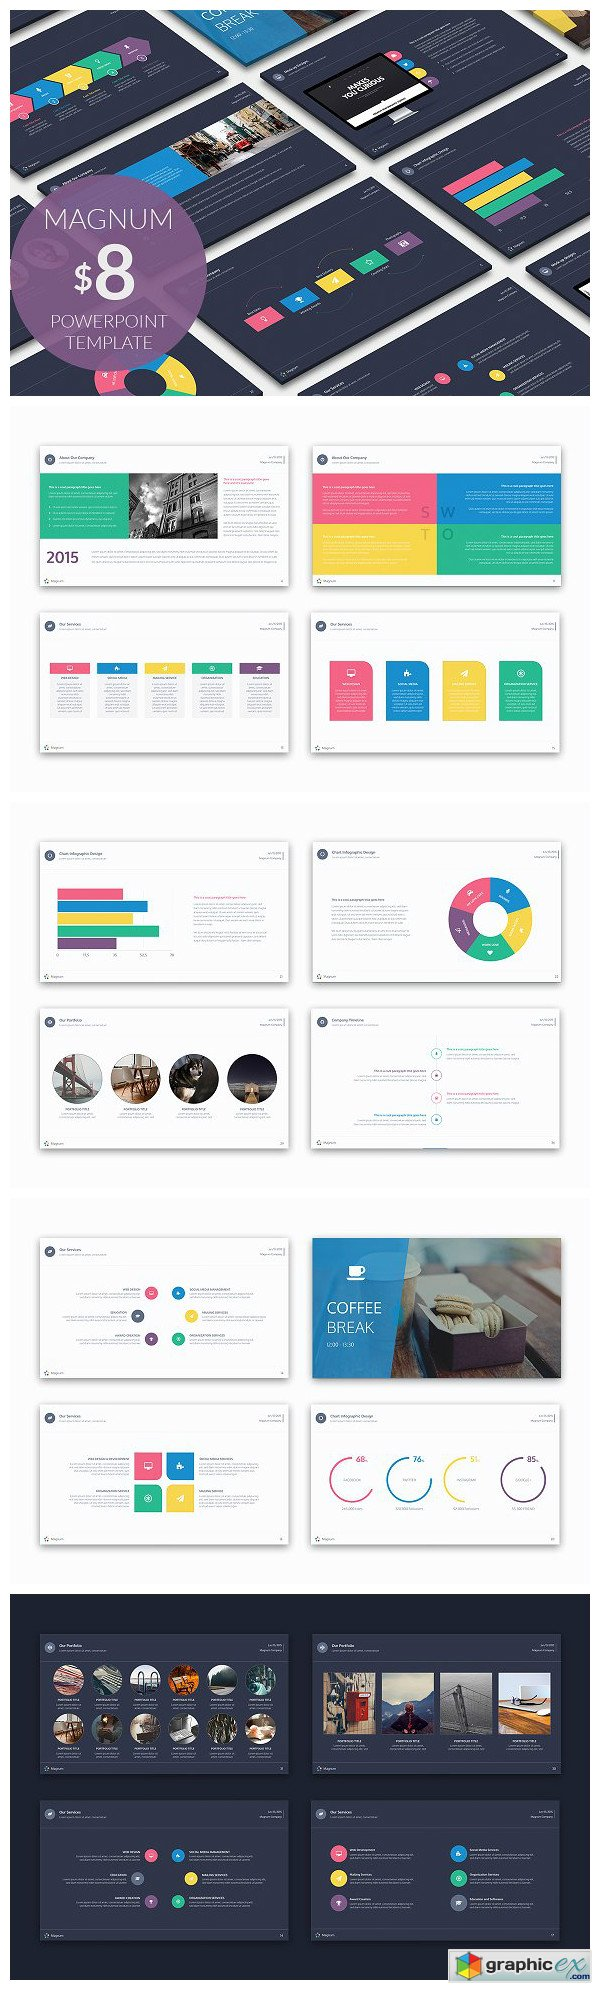 Magnum Powerpoint Template